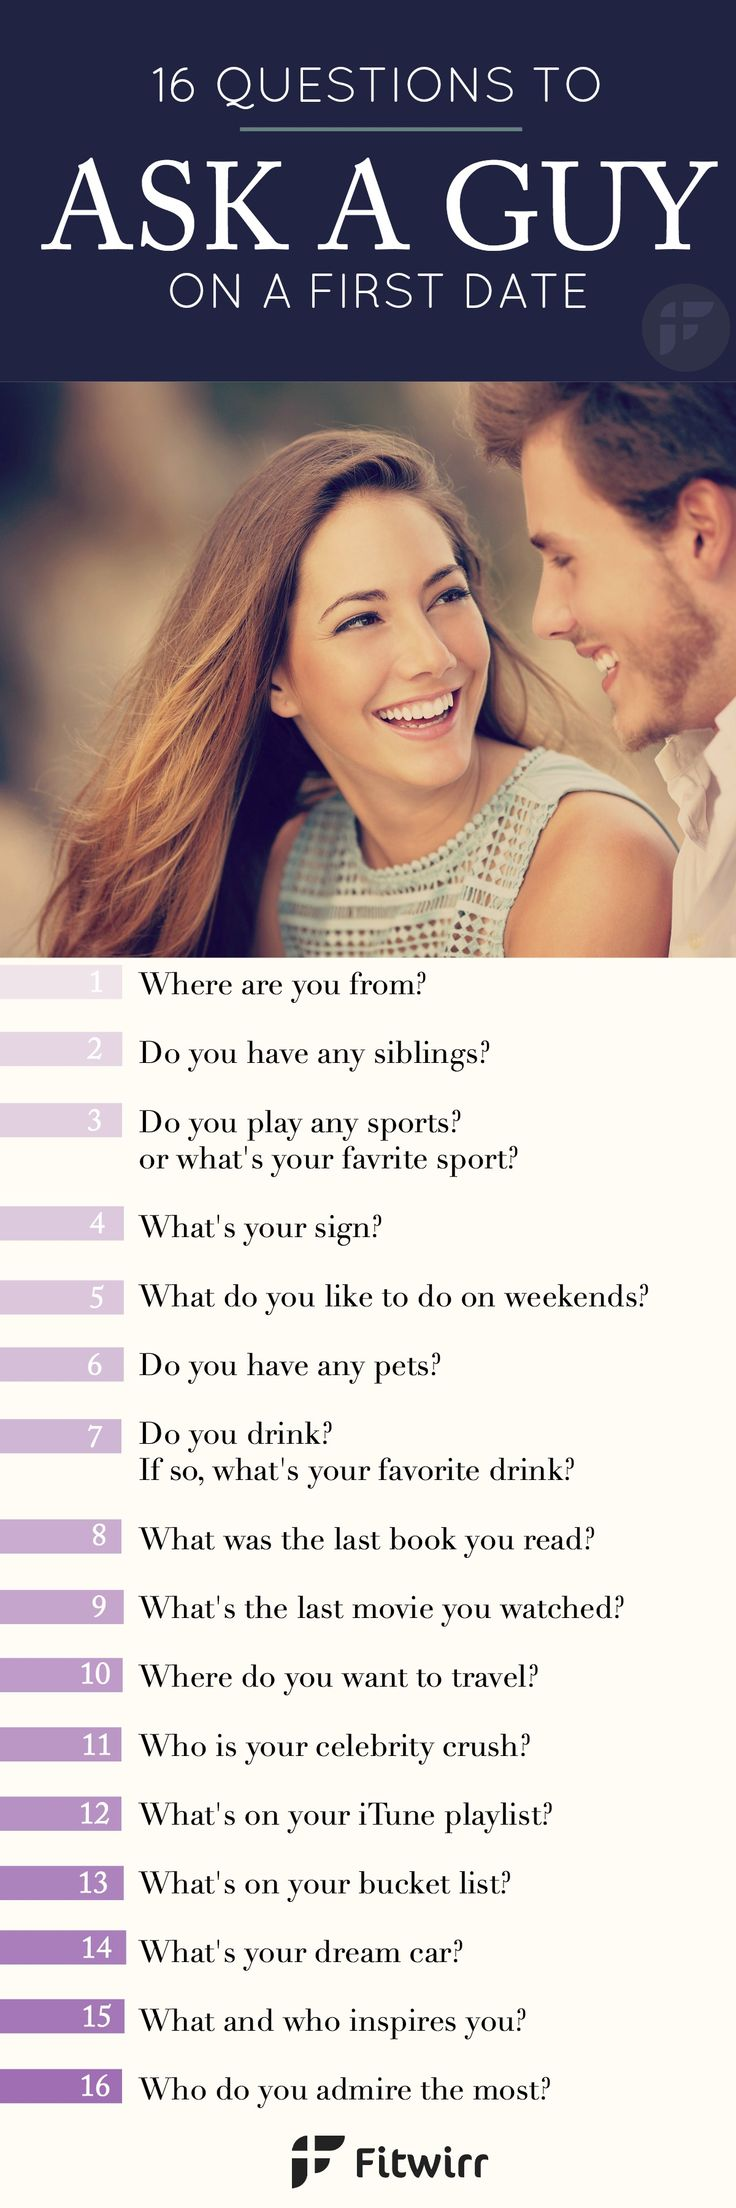 50 Great Questions To Ask A Guy